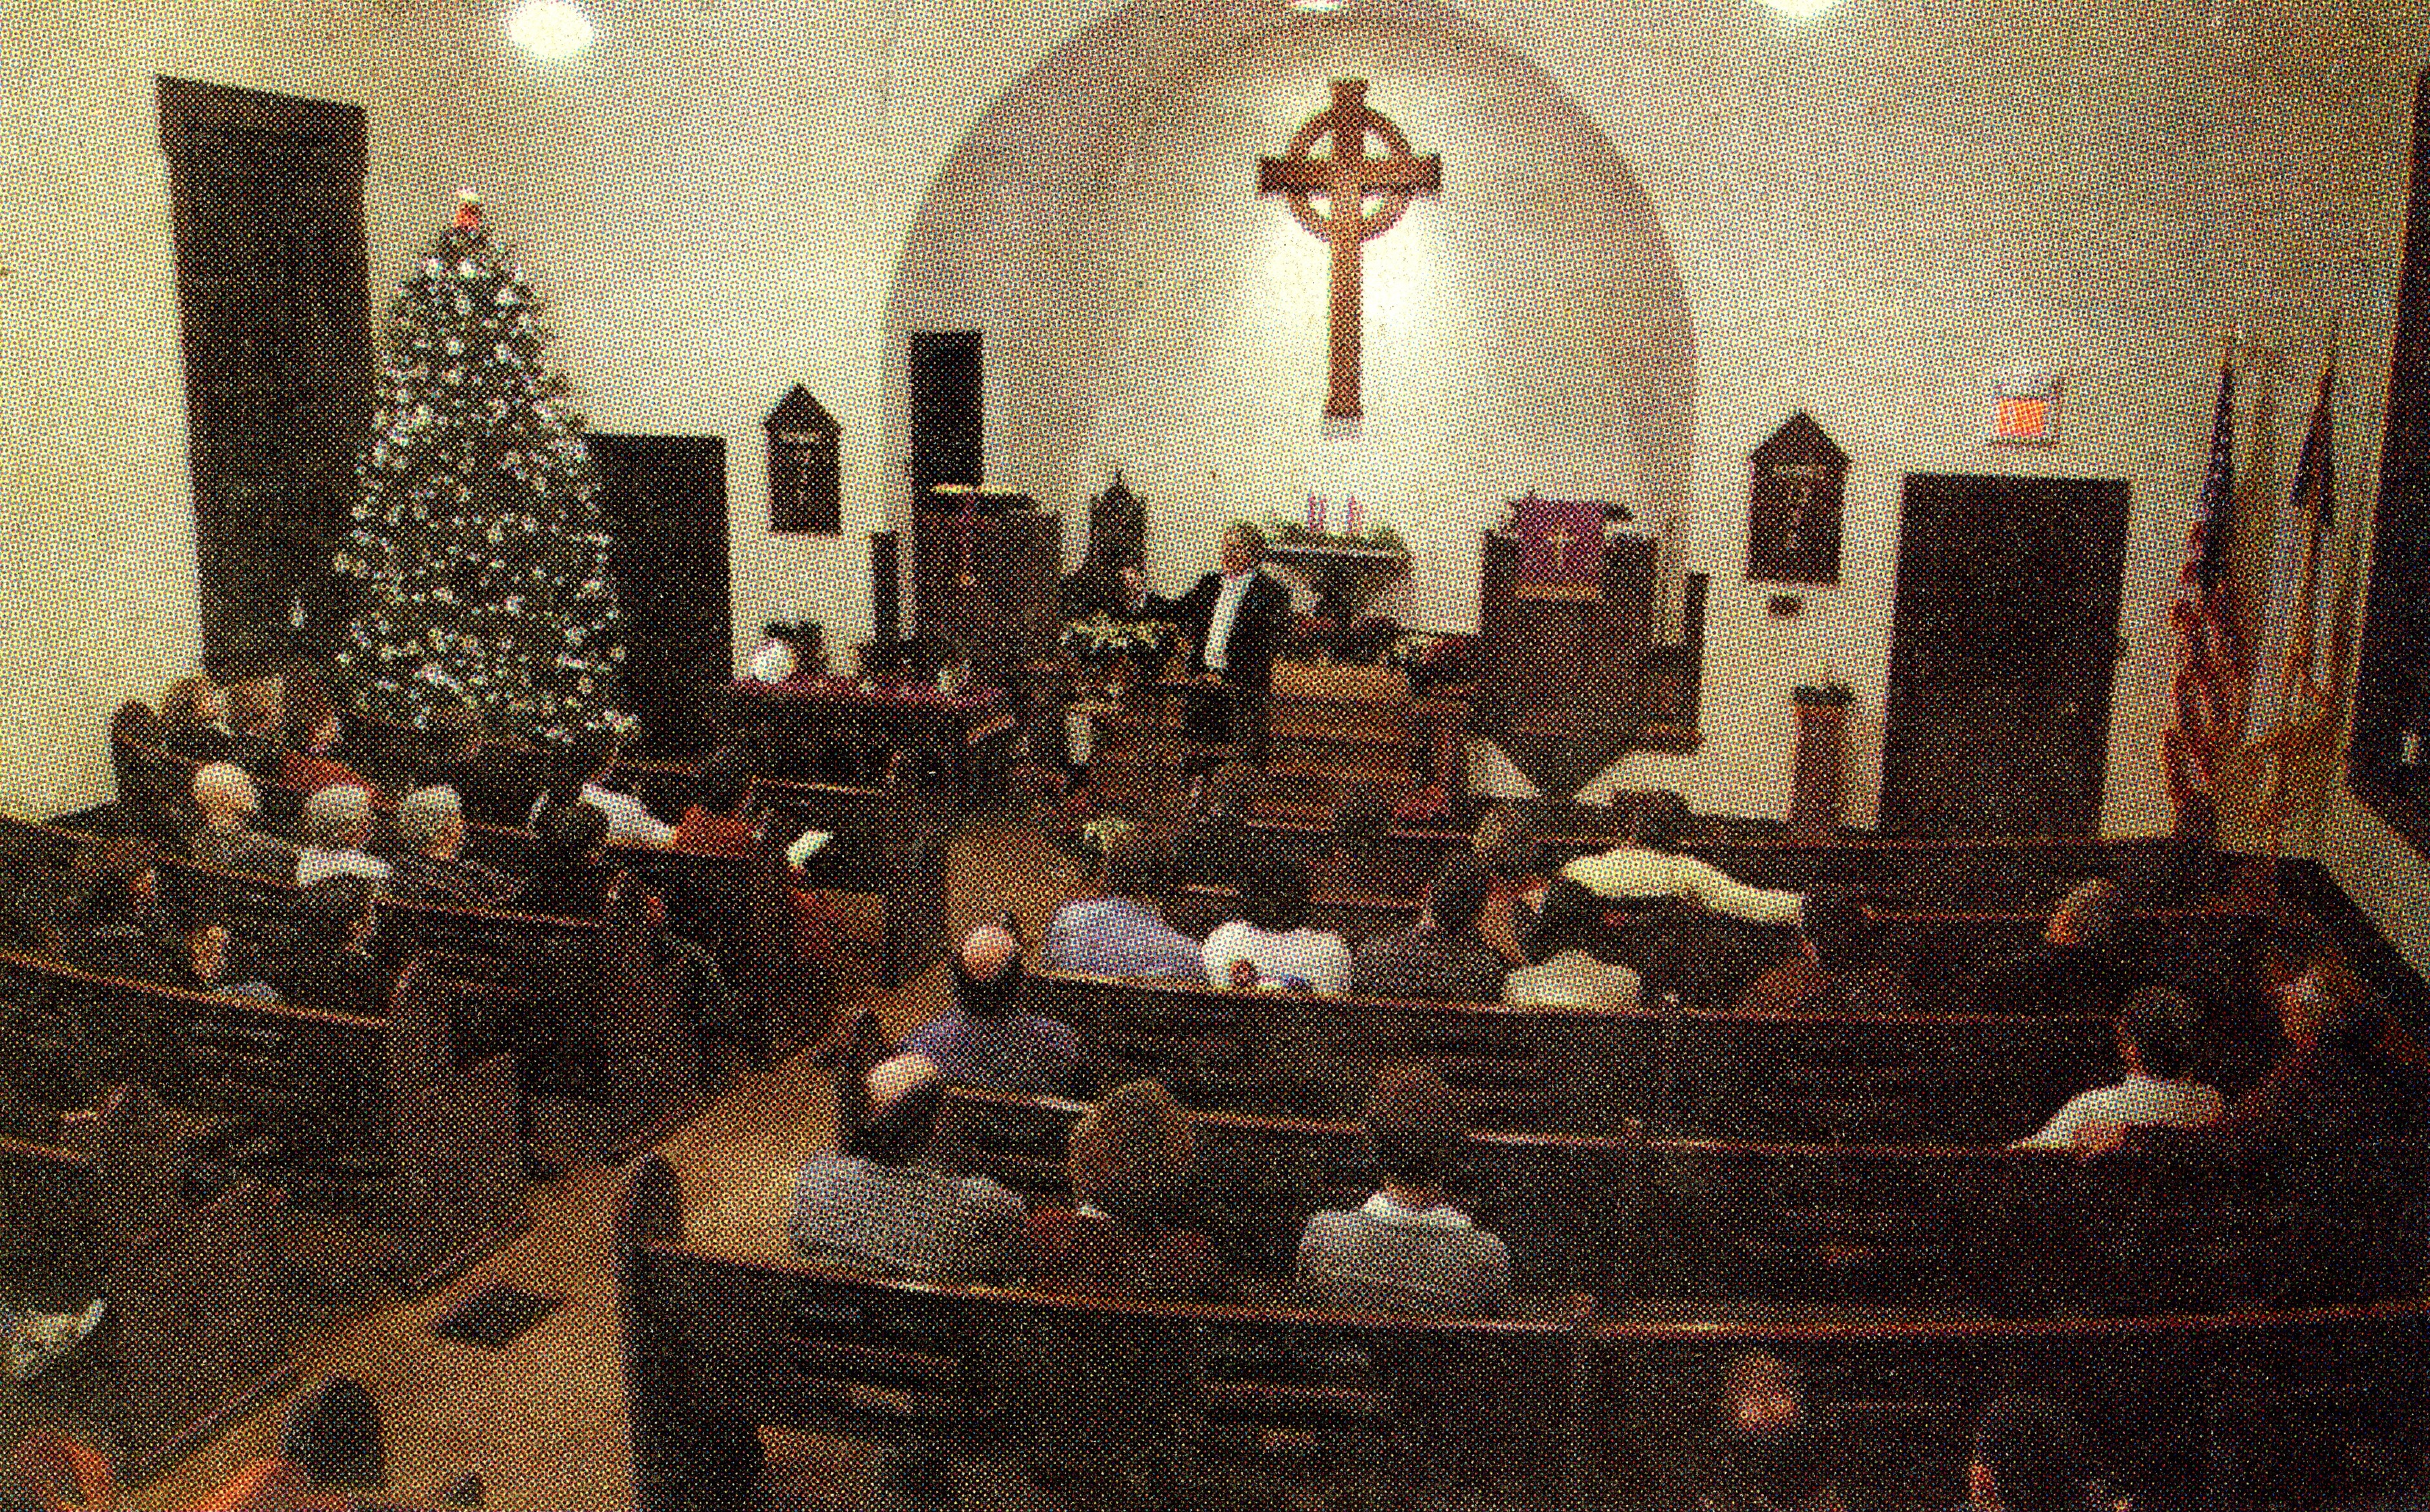 pine grove mills christian personals Information about st alban's anglican church, pine grove mills, pa.